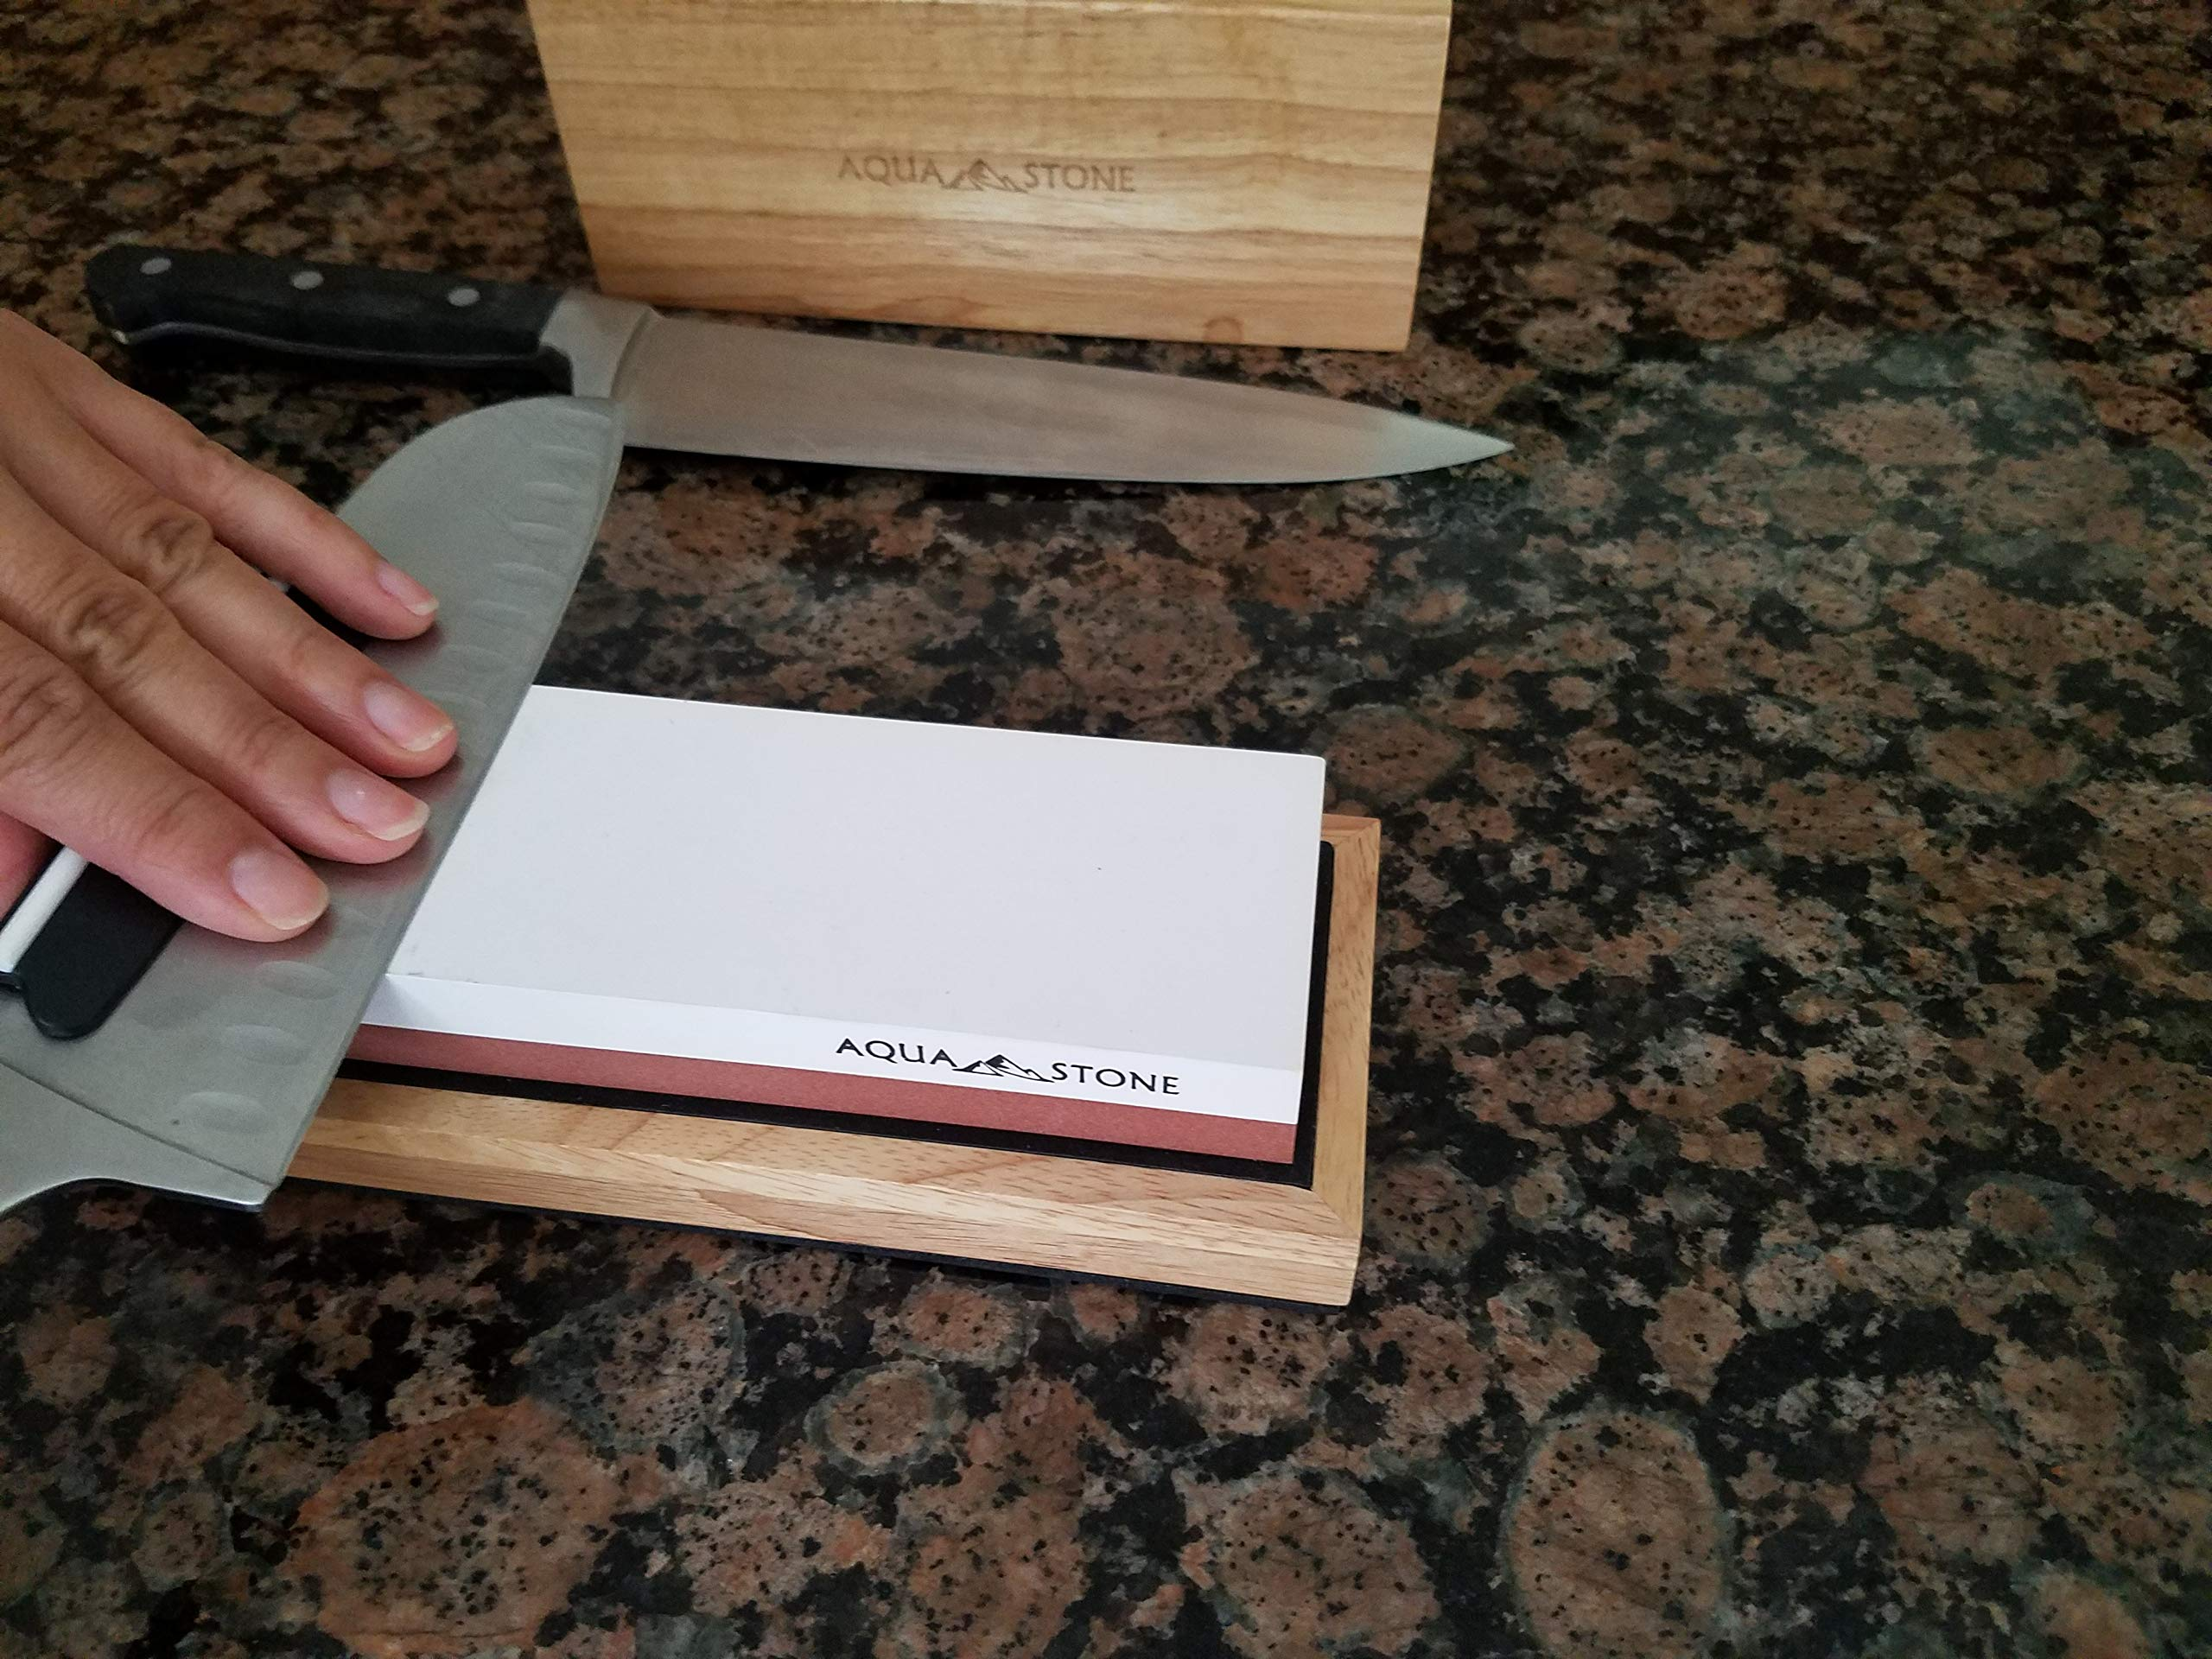 Professional Knife Sharpener 2 Side Sharpening Stone Kit For Chefs, Home Kitchen Knives.Whetstone Grit 1000/6000 Watersone,NonSlip Wood Base, FREE Angle Guide, Silicone Base with Stylish Wood GIFT Box by Aquastone (Image #3)